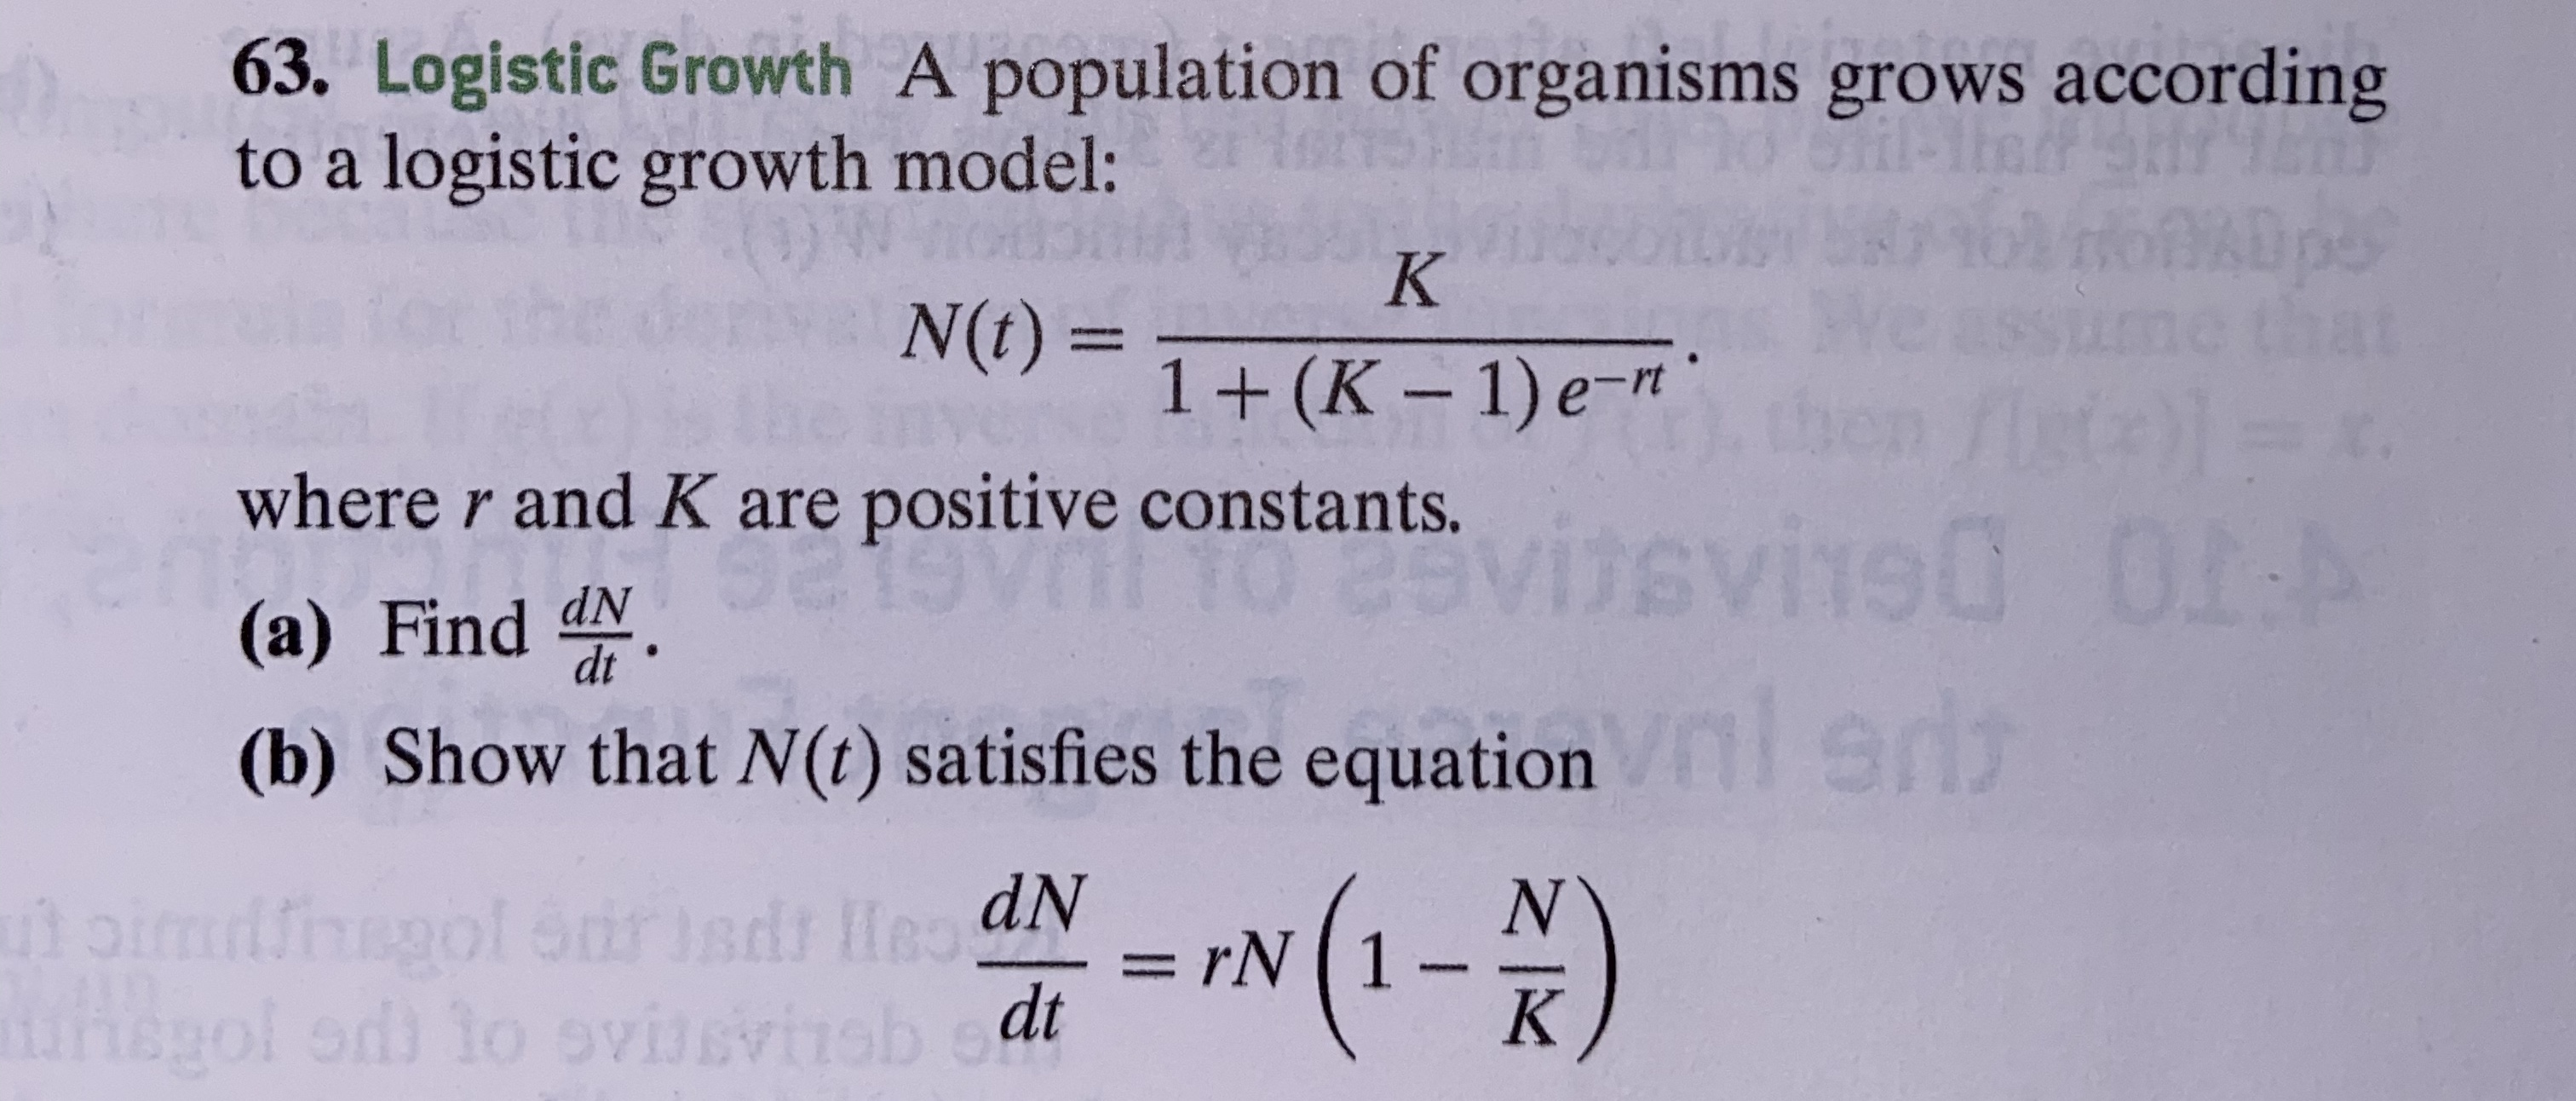 63. Logistic Growth A population of organisms grows according to a logistic growth model: K N(t)= 1+ (K-1) e-mt where r and K are positive constants. 0I:A visvi90 (a) Find dN. ST (b) Show that N(t) satisfies the equation 1-) N rN 1 K utoimiiol Strisdr HeaN gol od to ovissvisb et